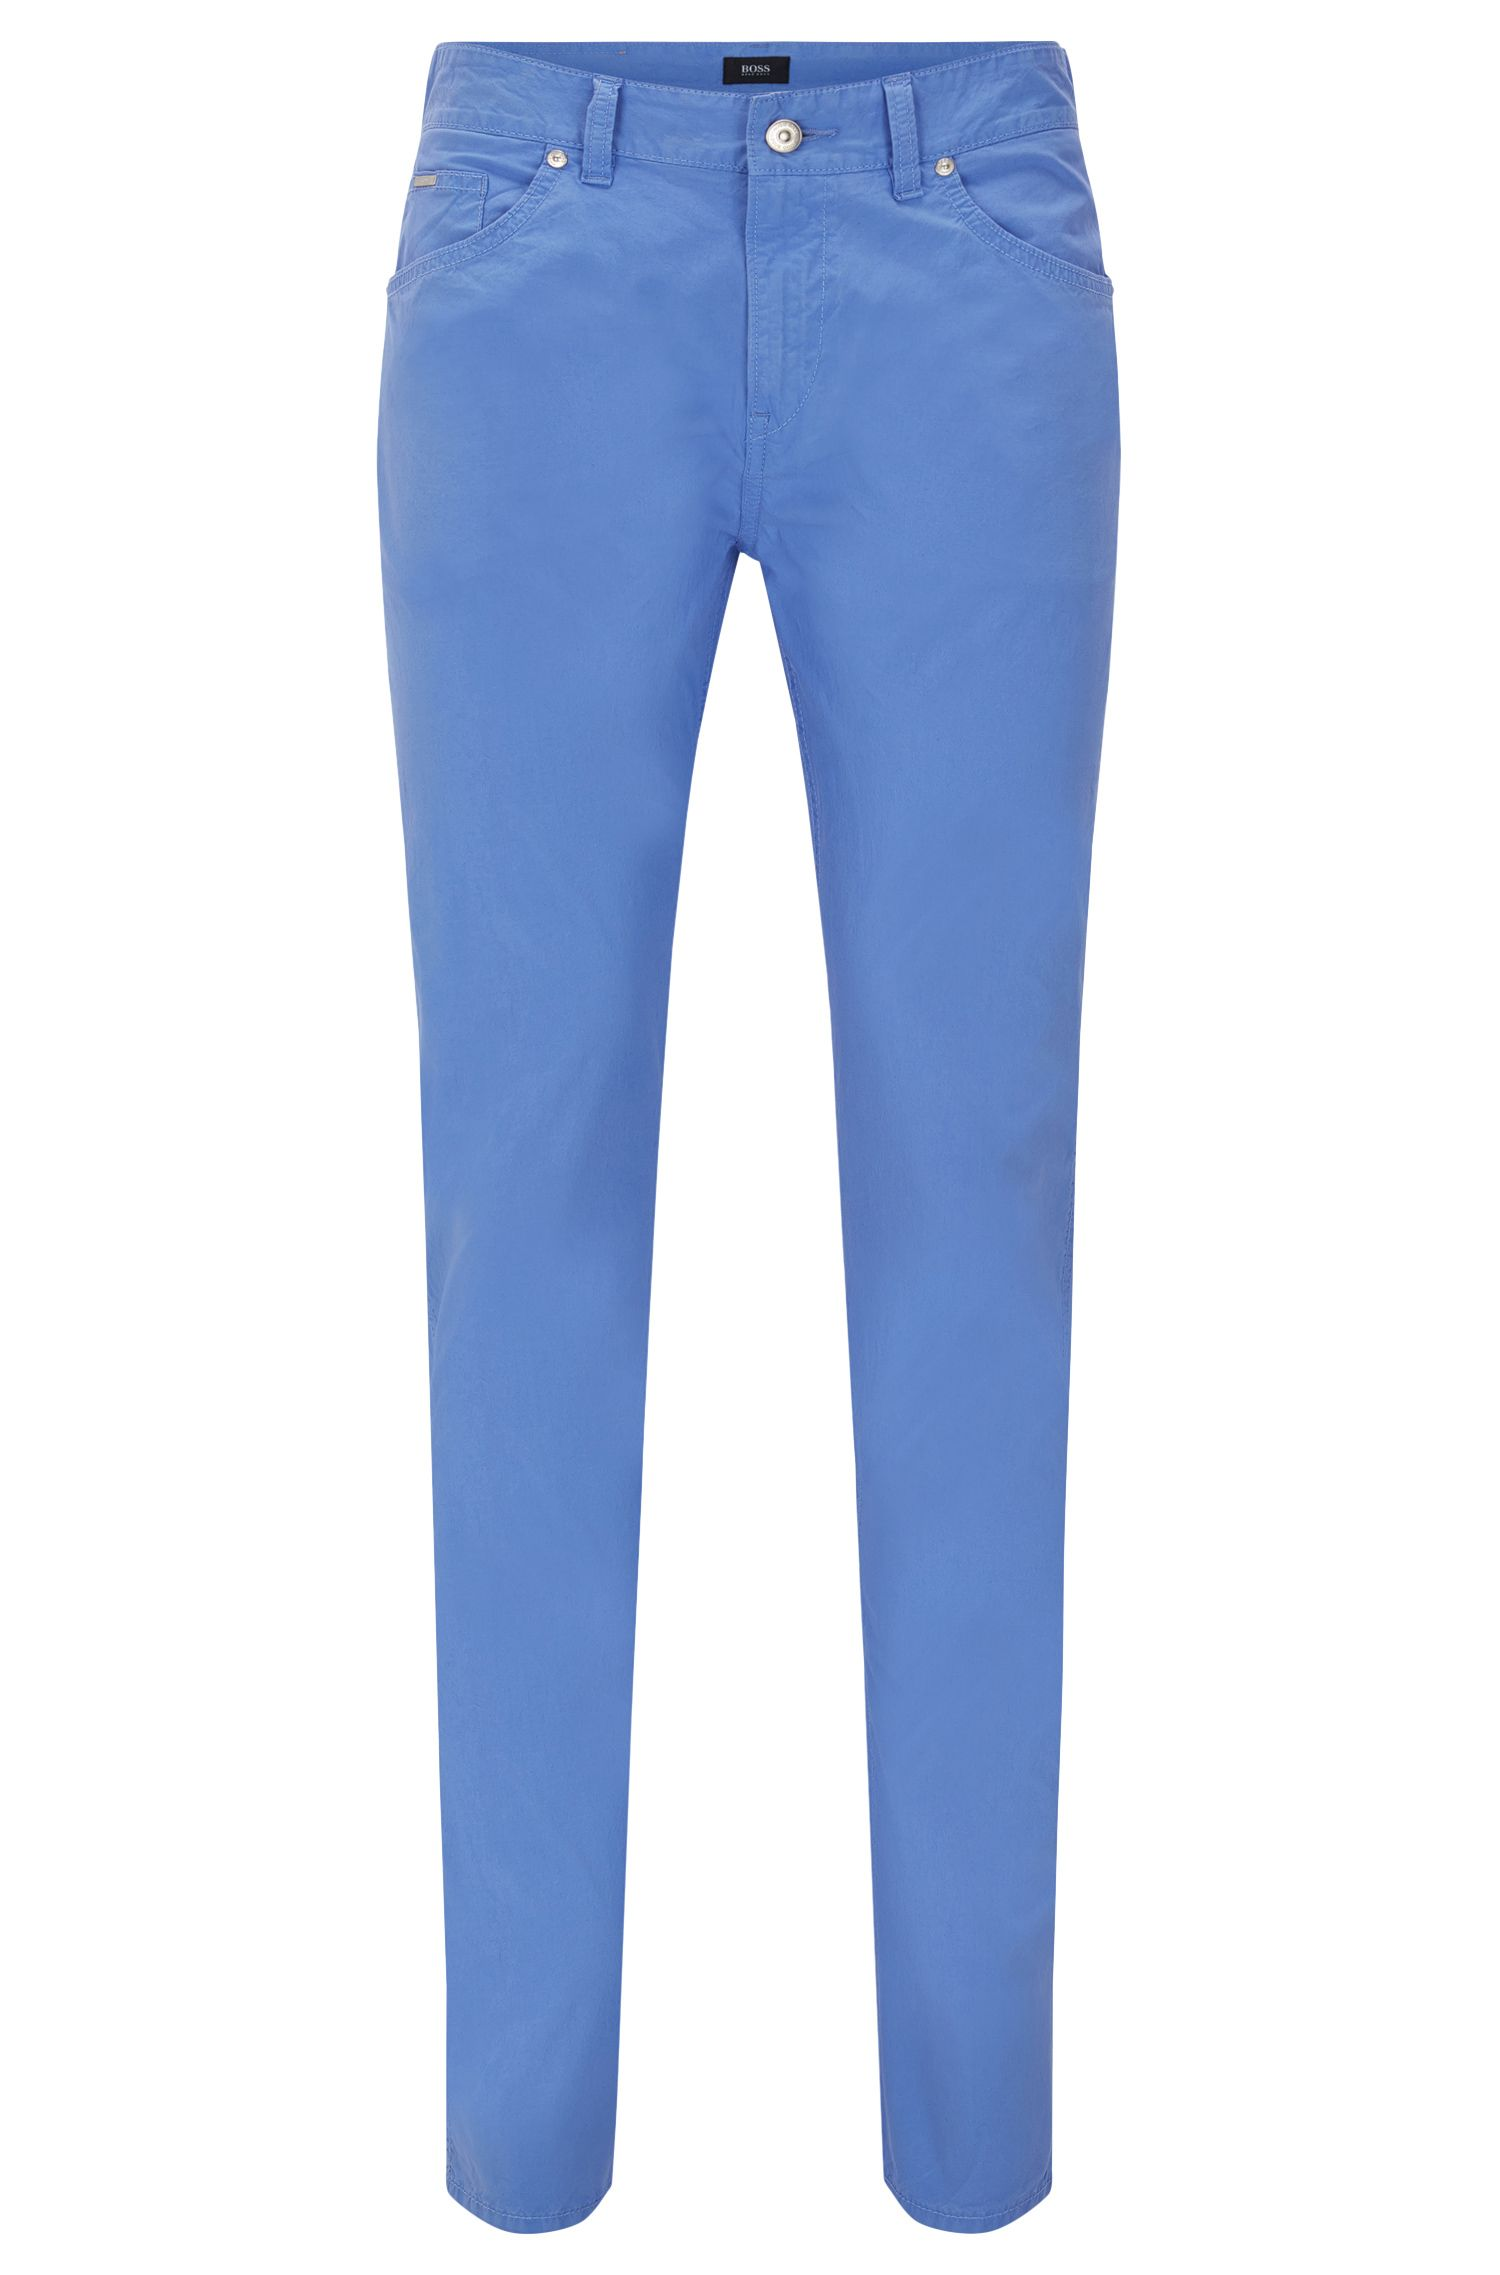 'Delaware' | Slim Fit, Stretch Cotton Trousers